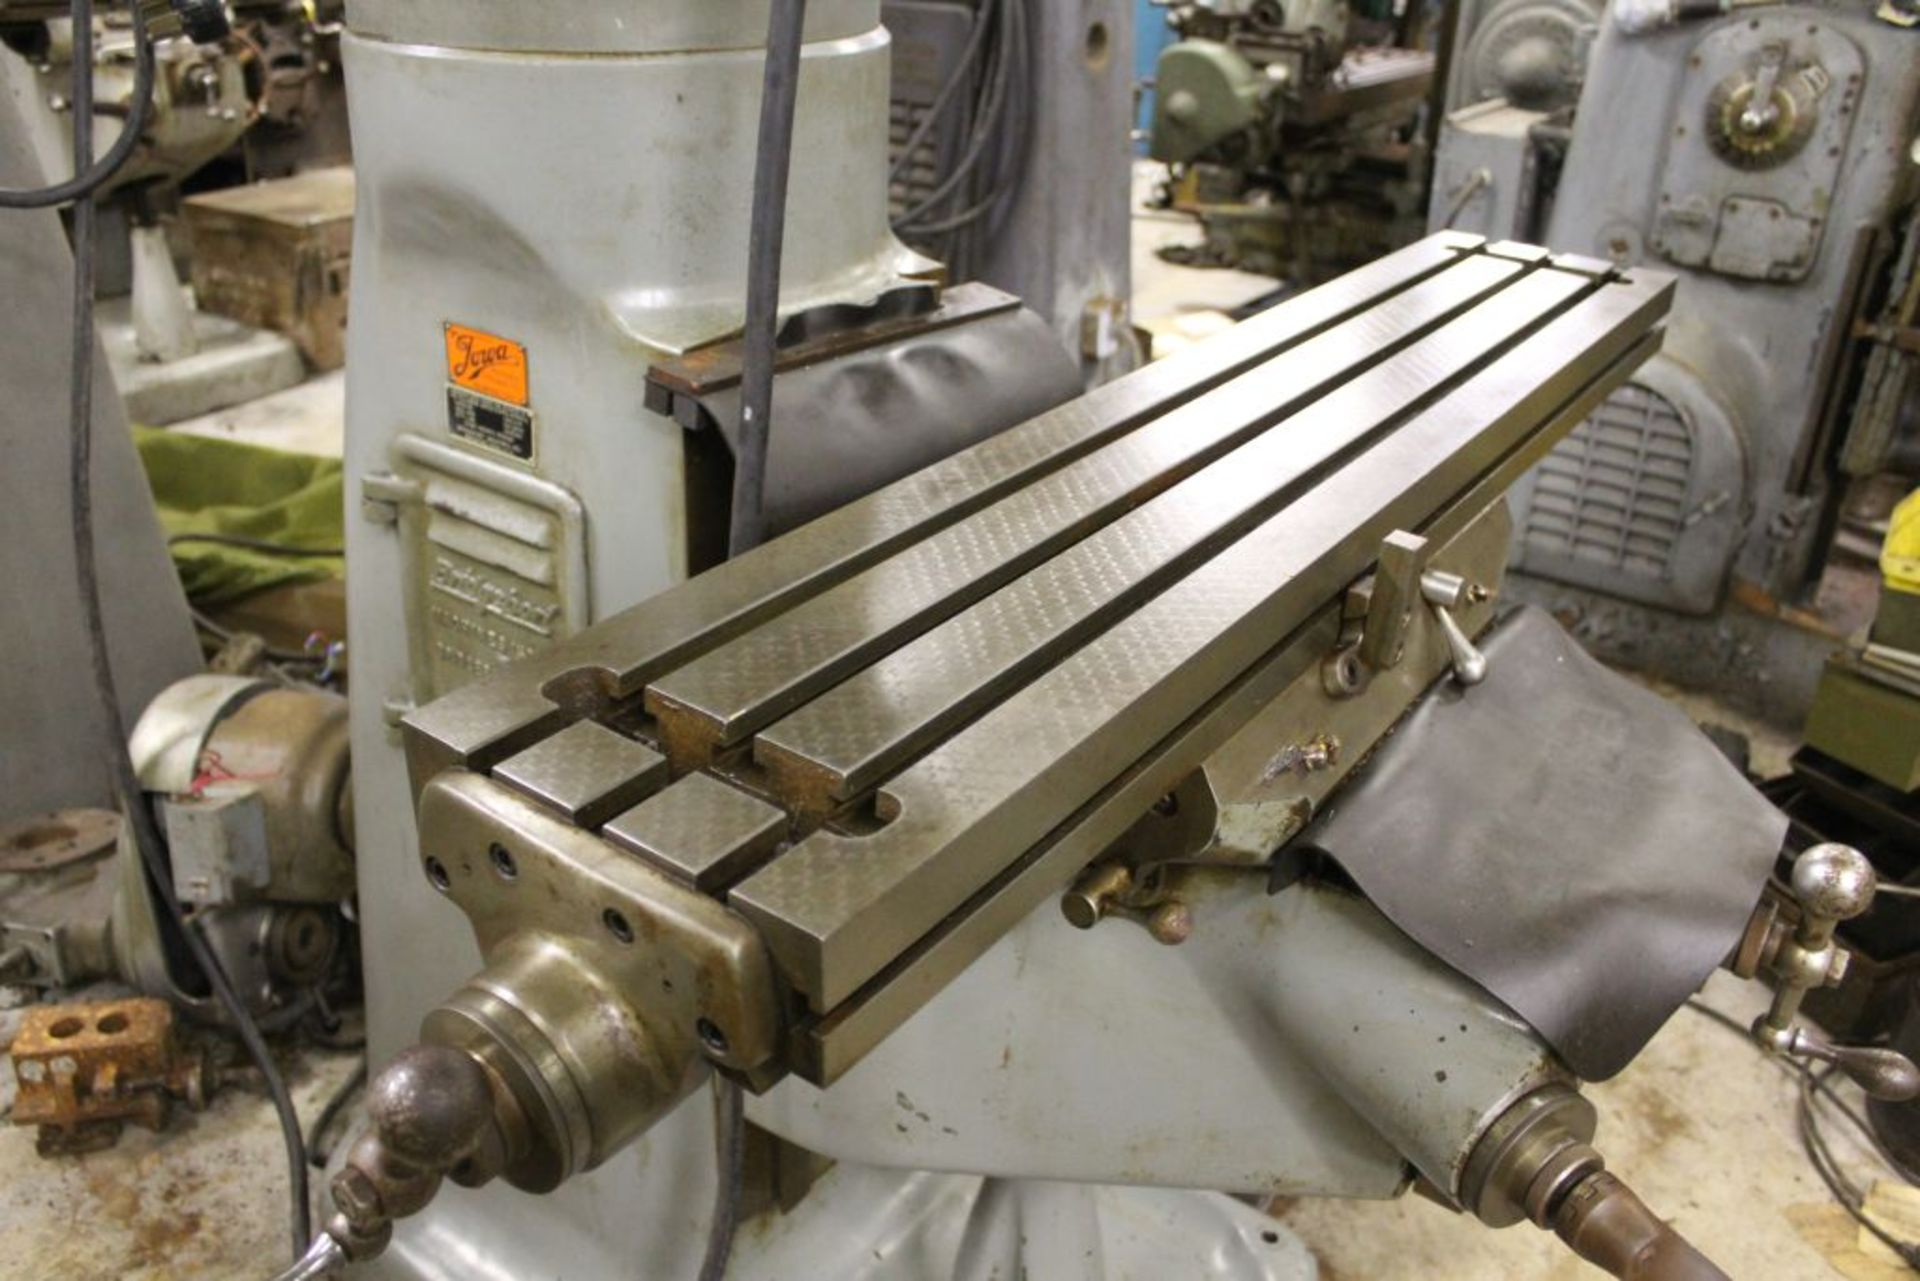 """Bridgeport mill, model 12-BR, sn 83978, 9"""" x 48"""" bed, manual (not down power), shaping attachment. - Image 4 of 15"""